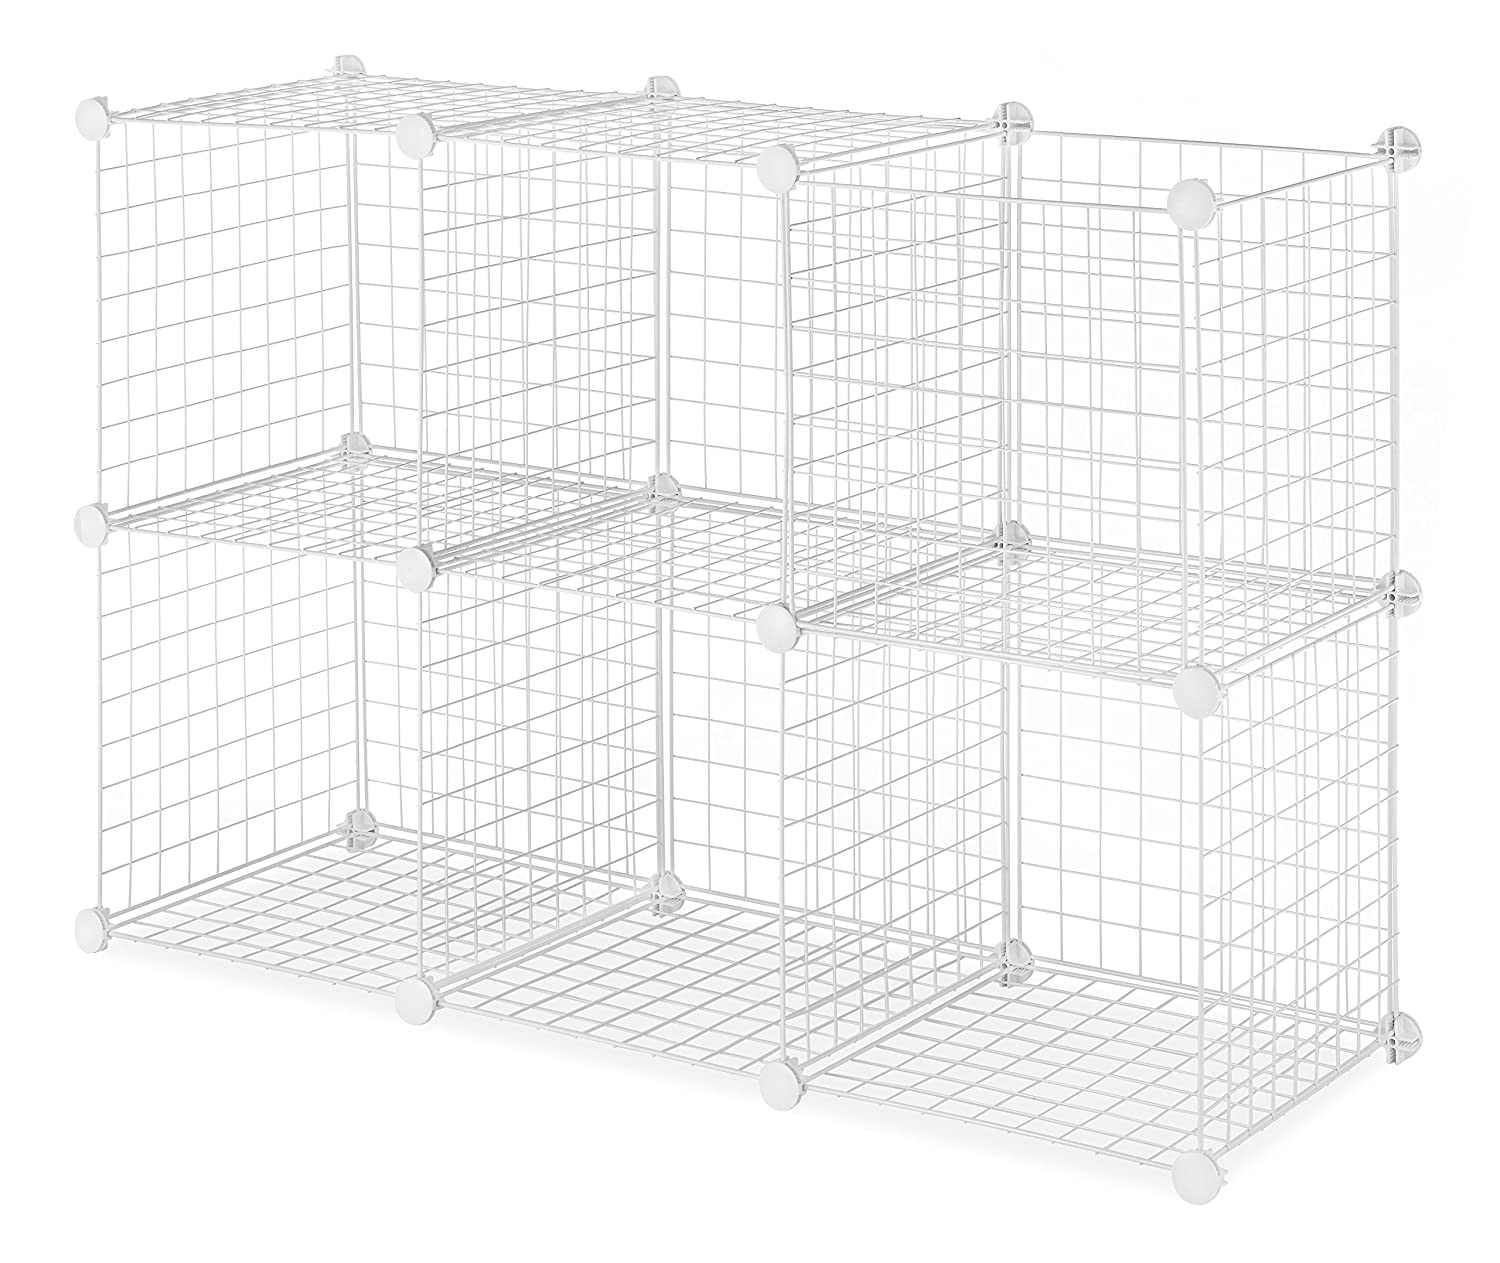 Home shop storage cabinets md stationary mesh security cabinet with - Home Shop Storage Cabinets Md Stationary Mesh Security Cabinet With 40